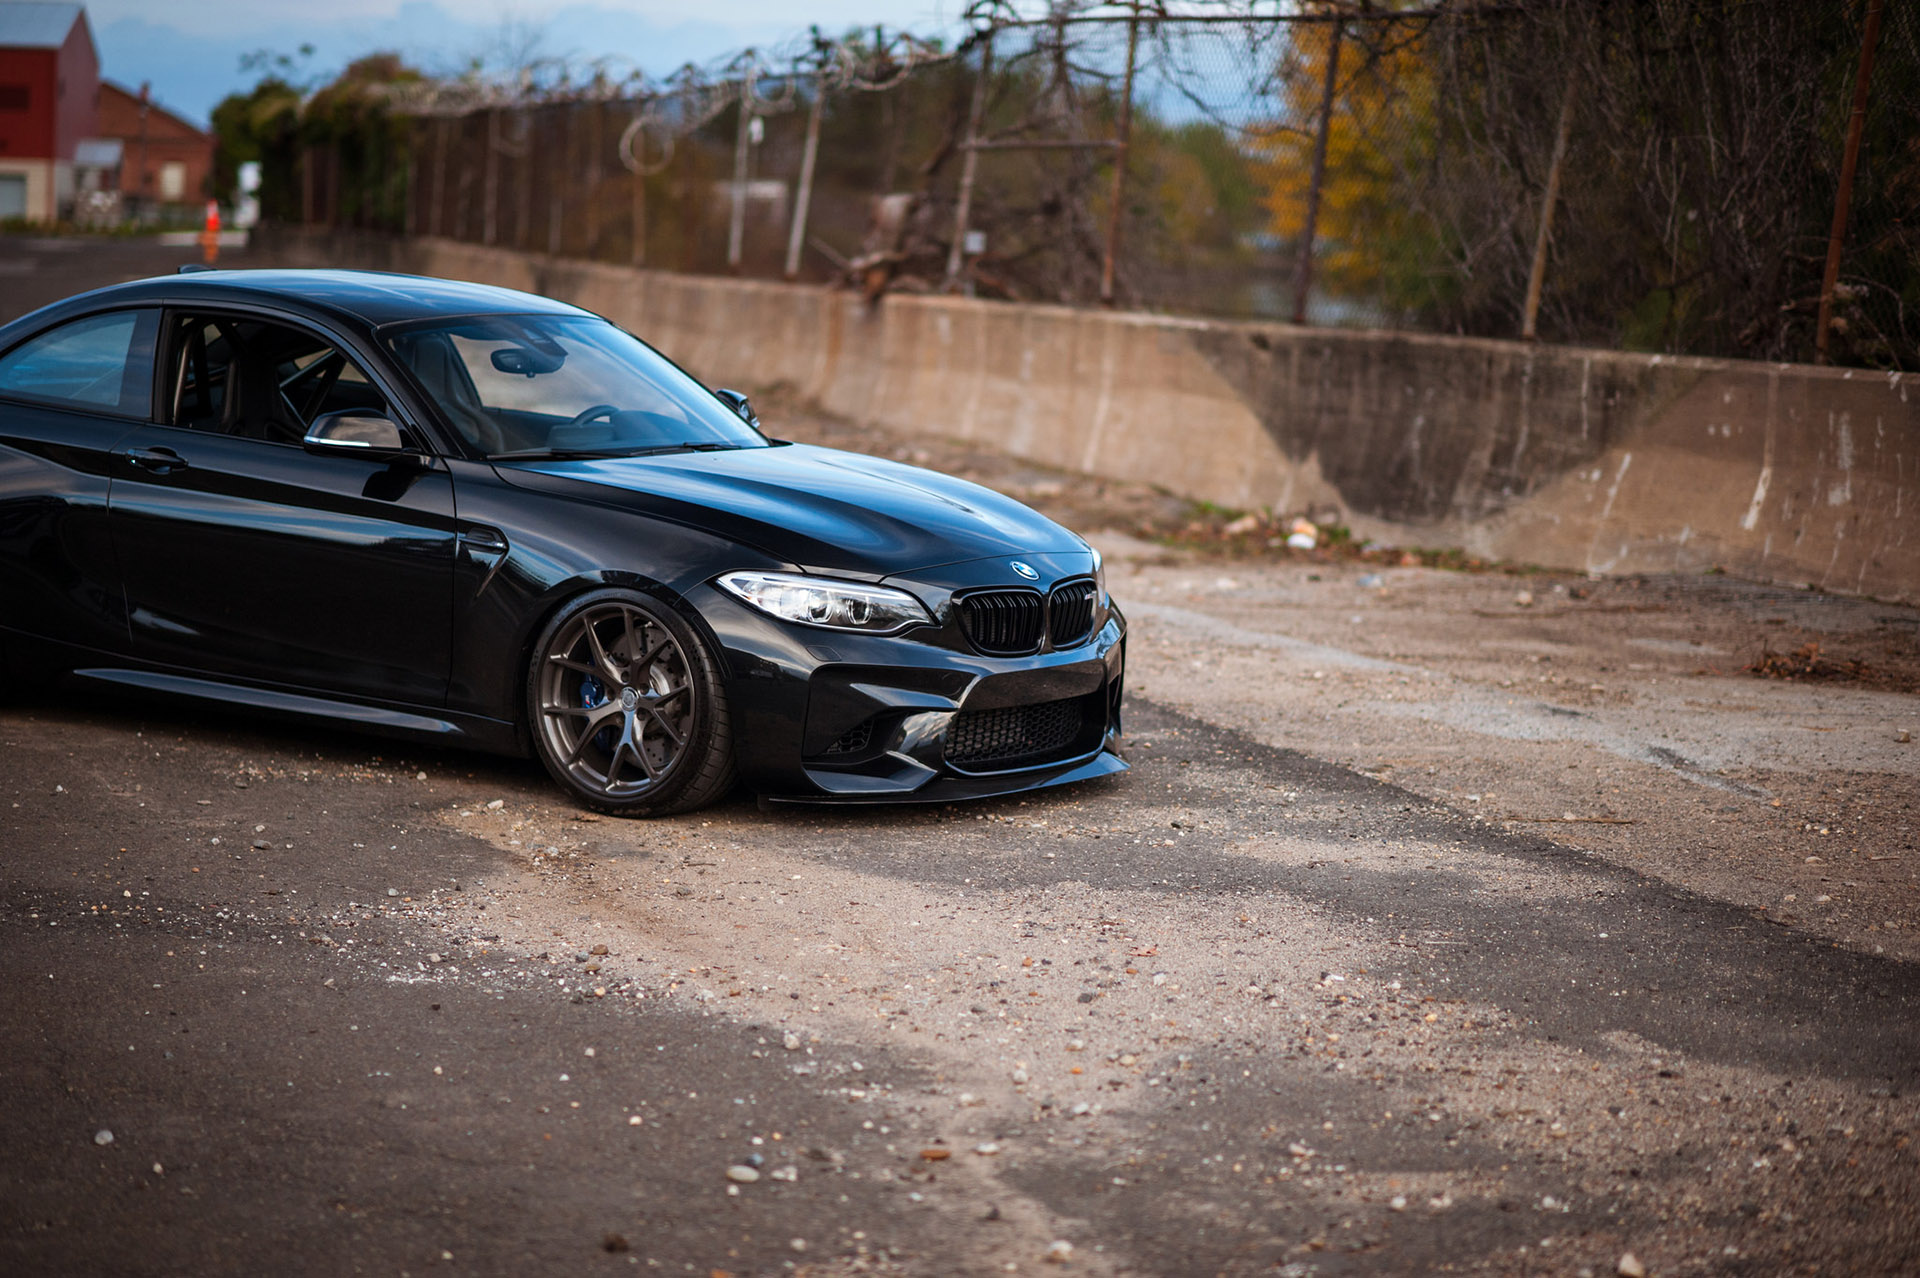 BMW M2 Coupe with HRE Wheels and Carbon Fiber Aero Kit (11)